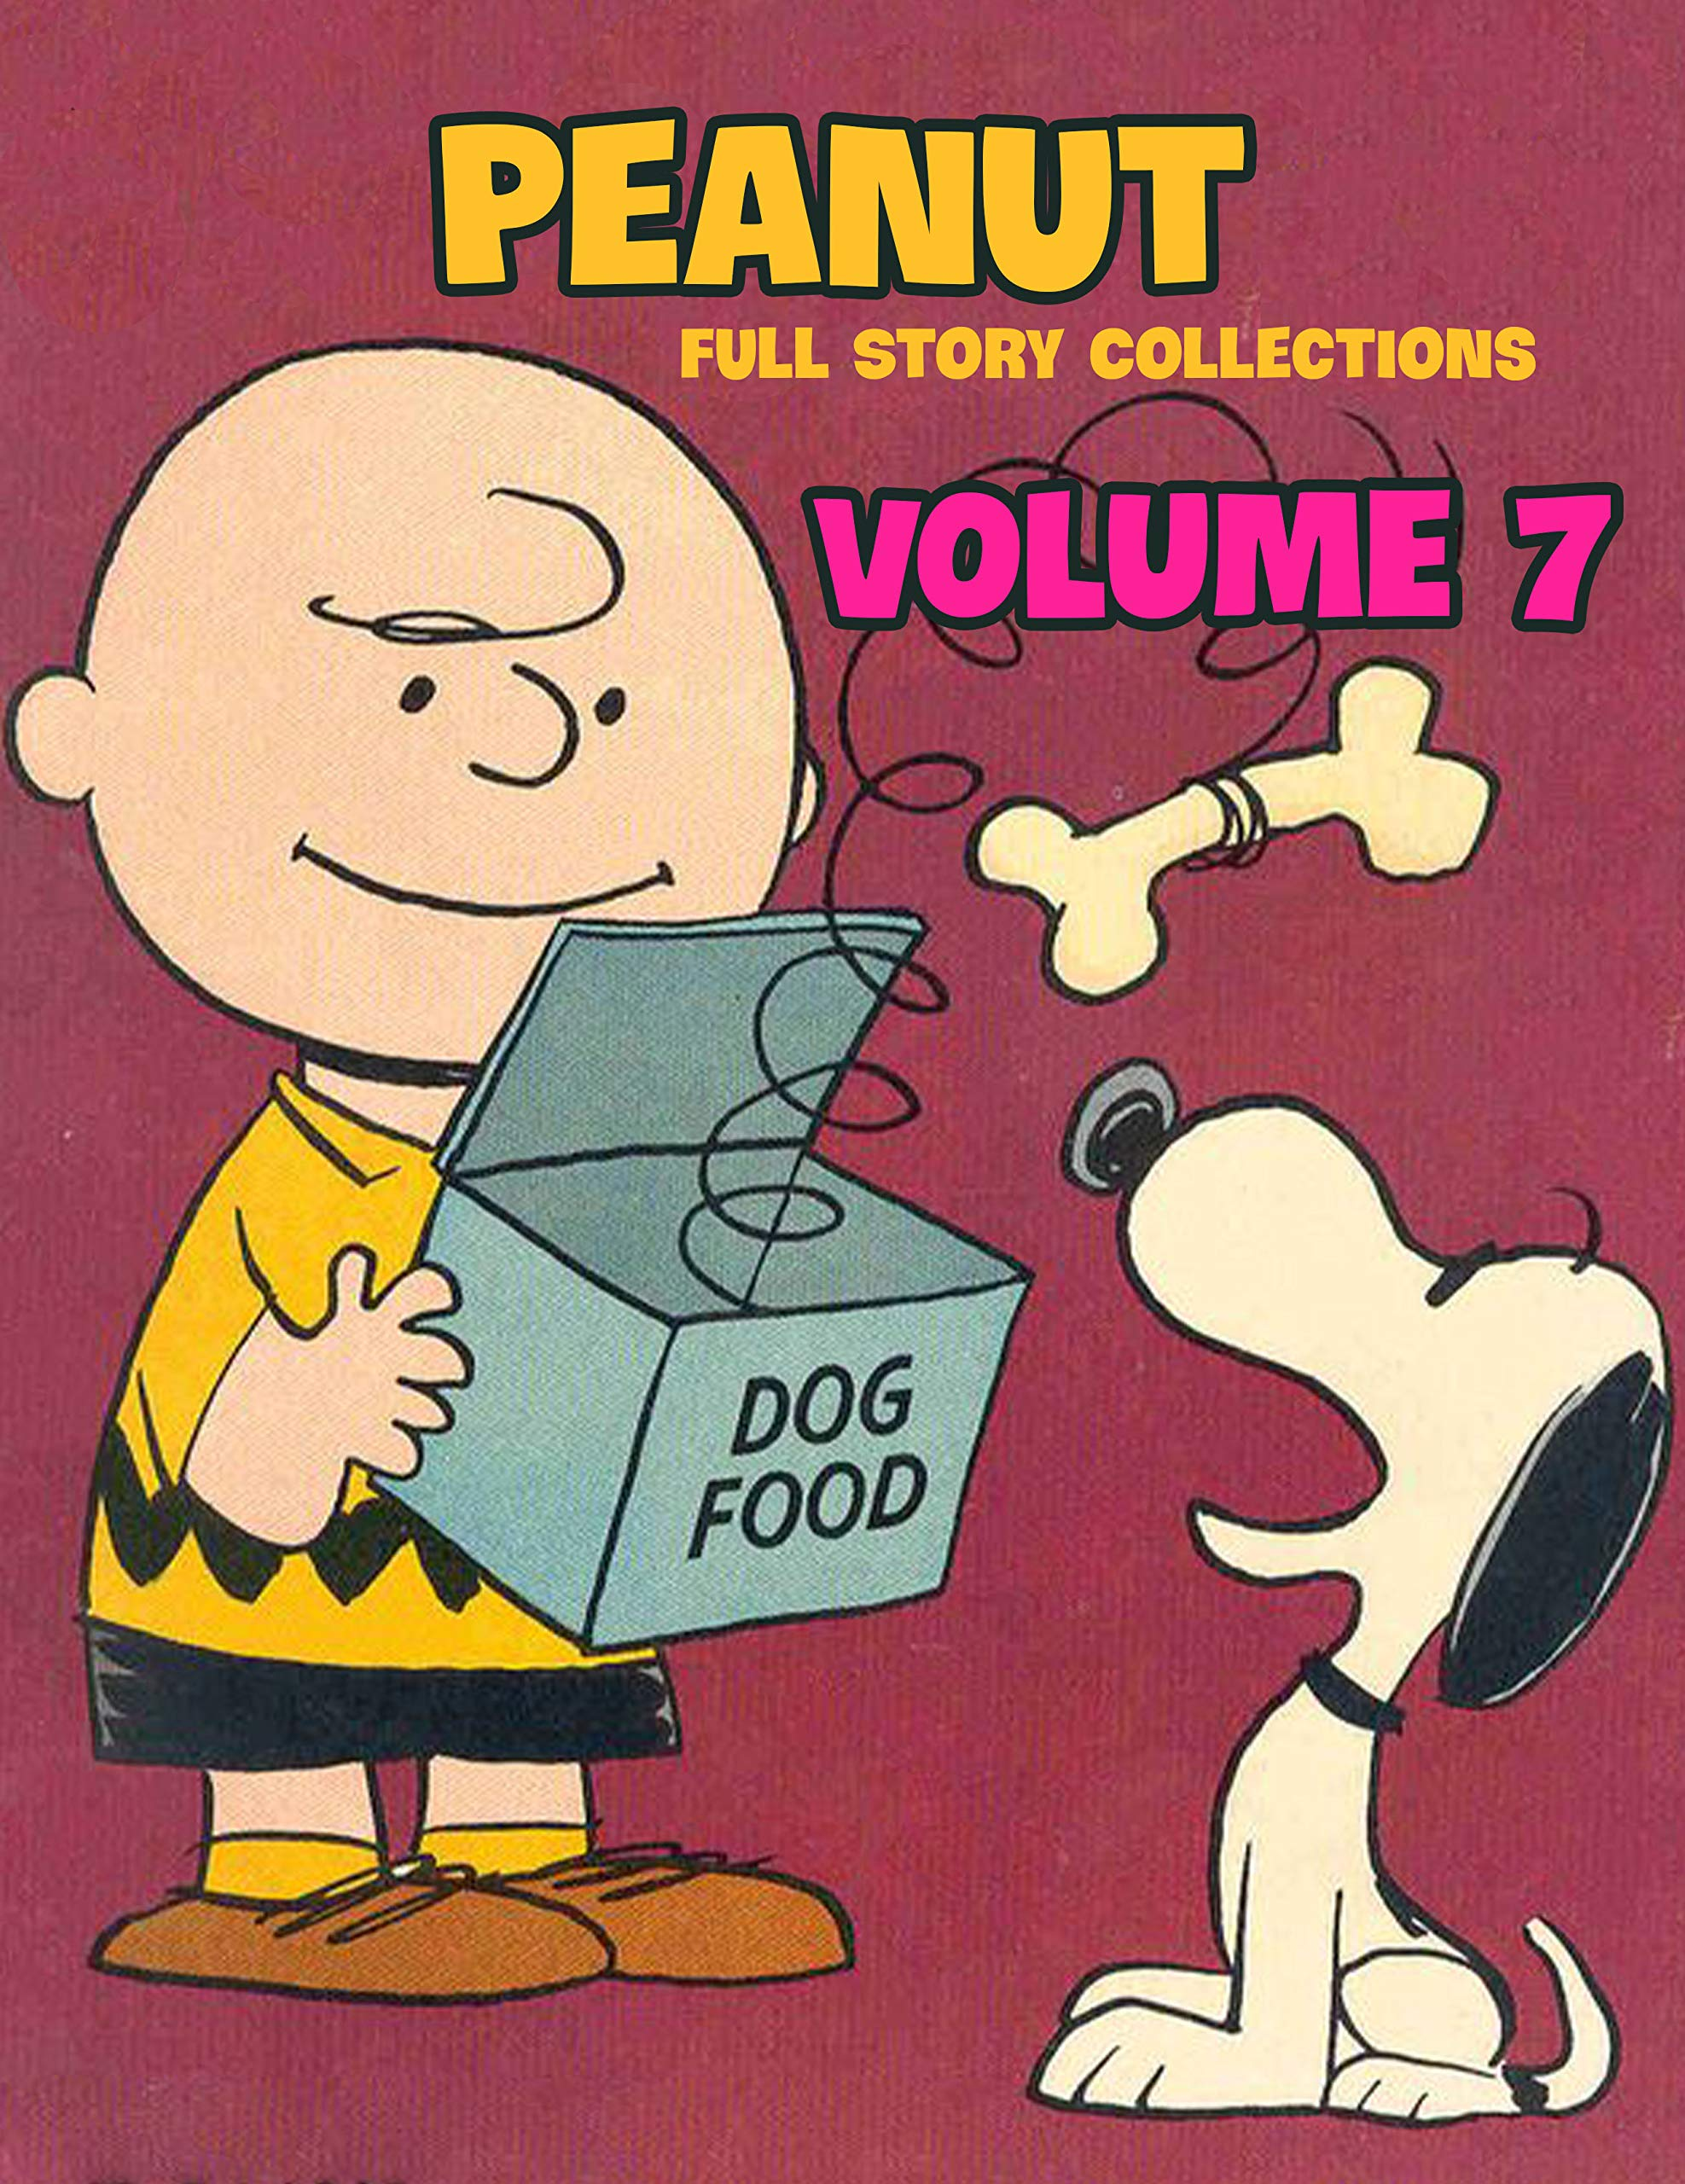 Full Story Peanut Collection Vol 7: Full Book of Peanuts Limited Edition Vol 7